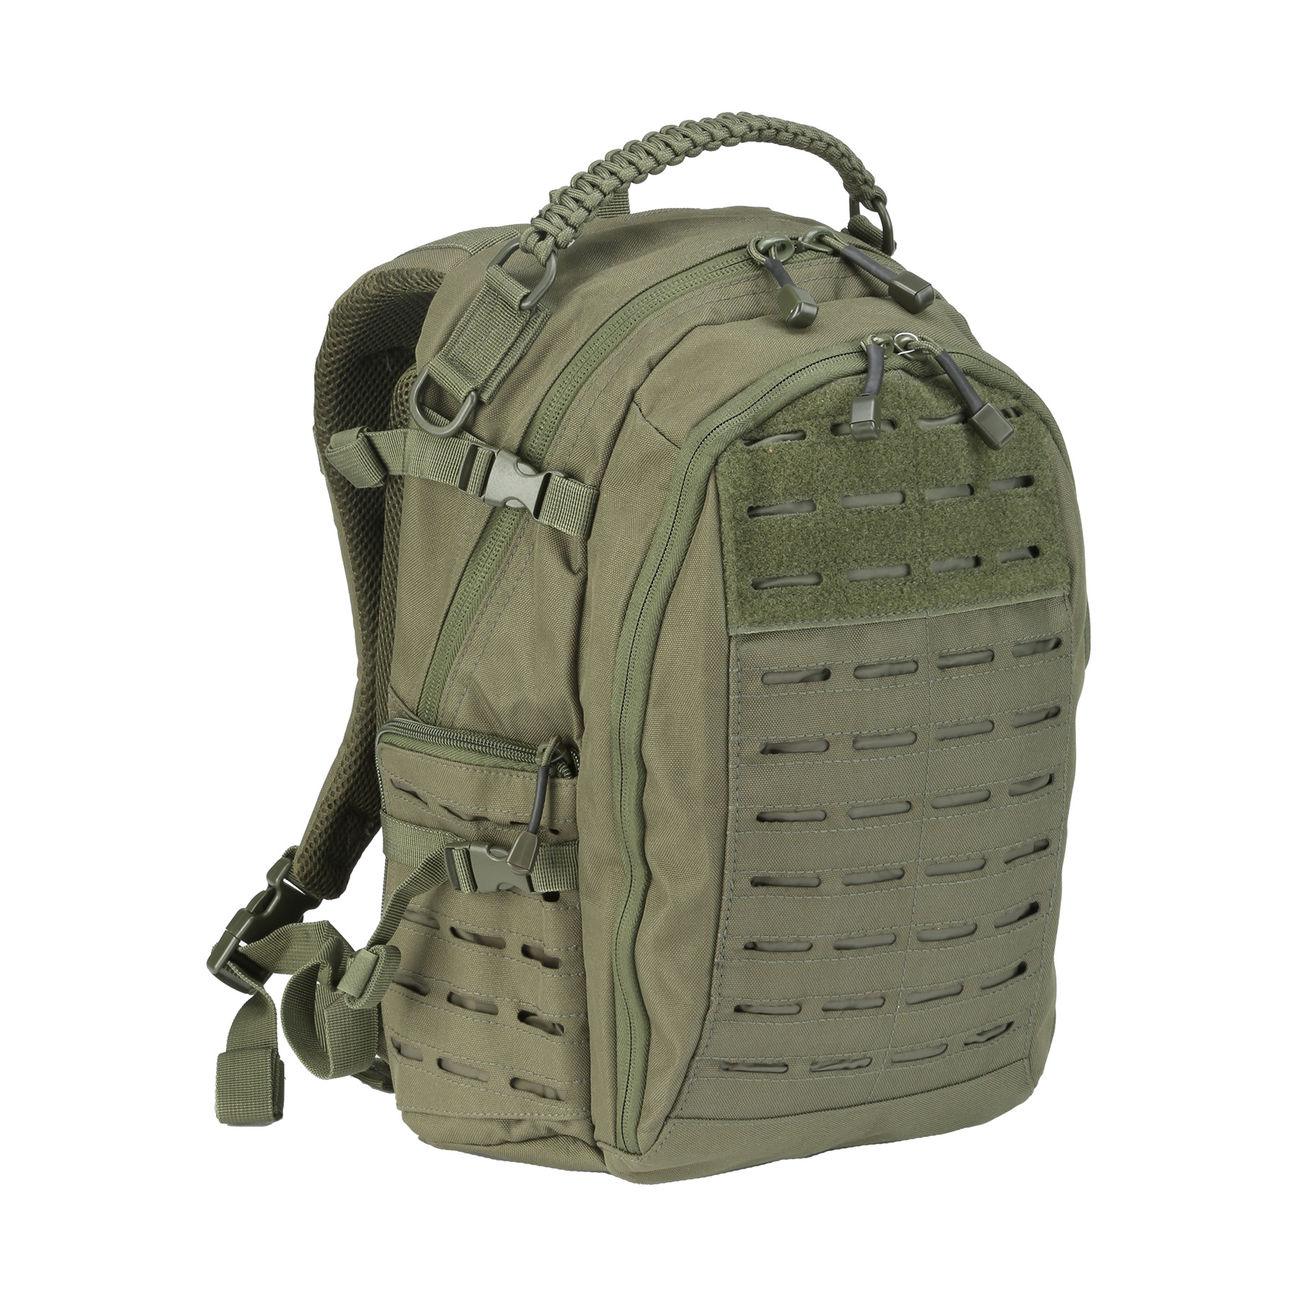 Mil-Tec Rucksack Mission Pack Laser Cut Small oliv 0